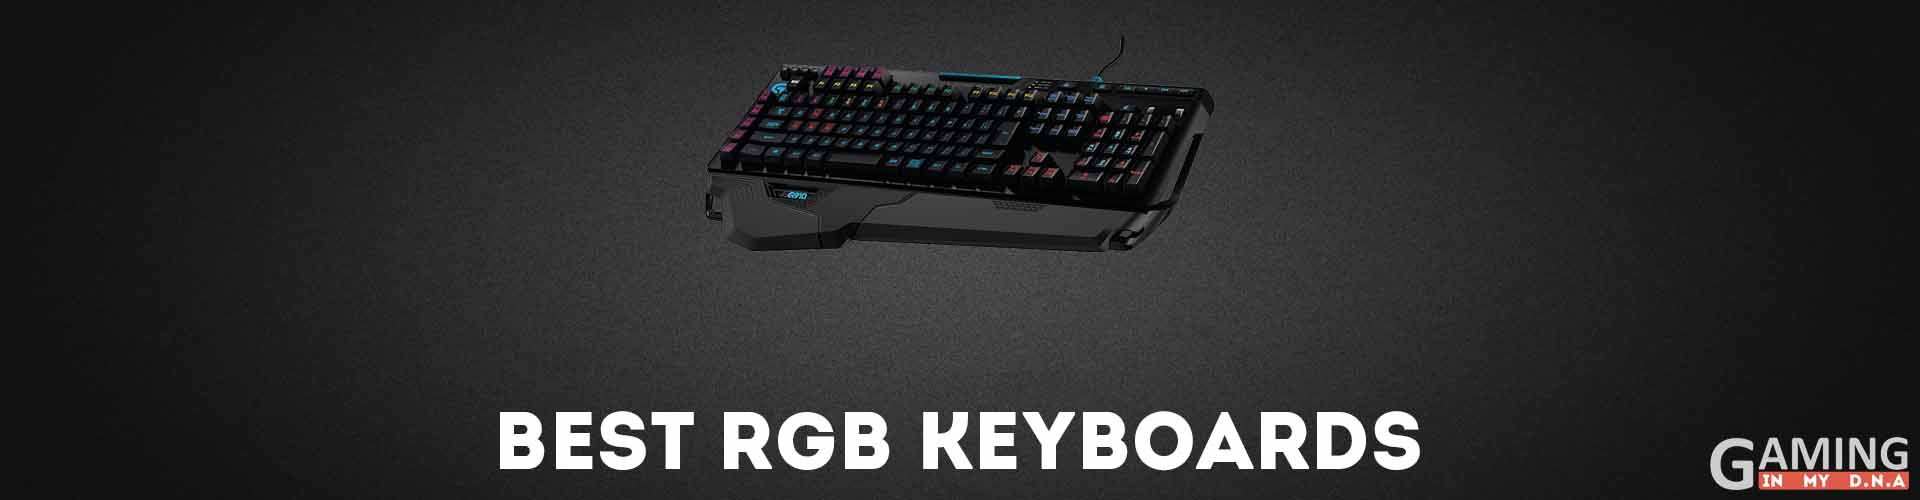 Best RGB Mechanical Keyboards for gaming